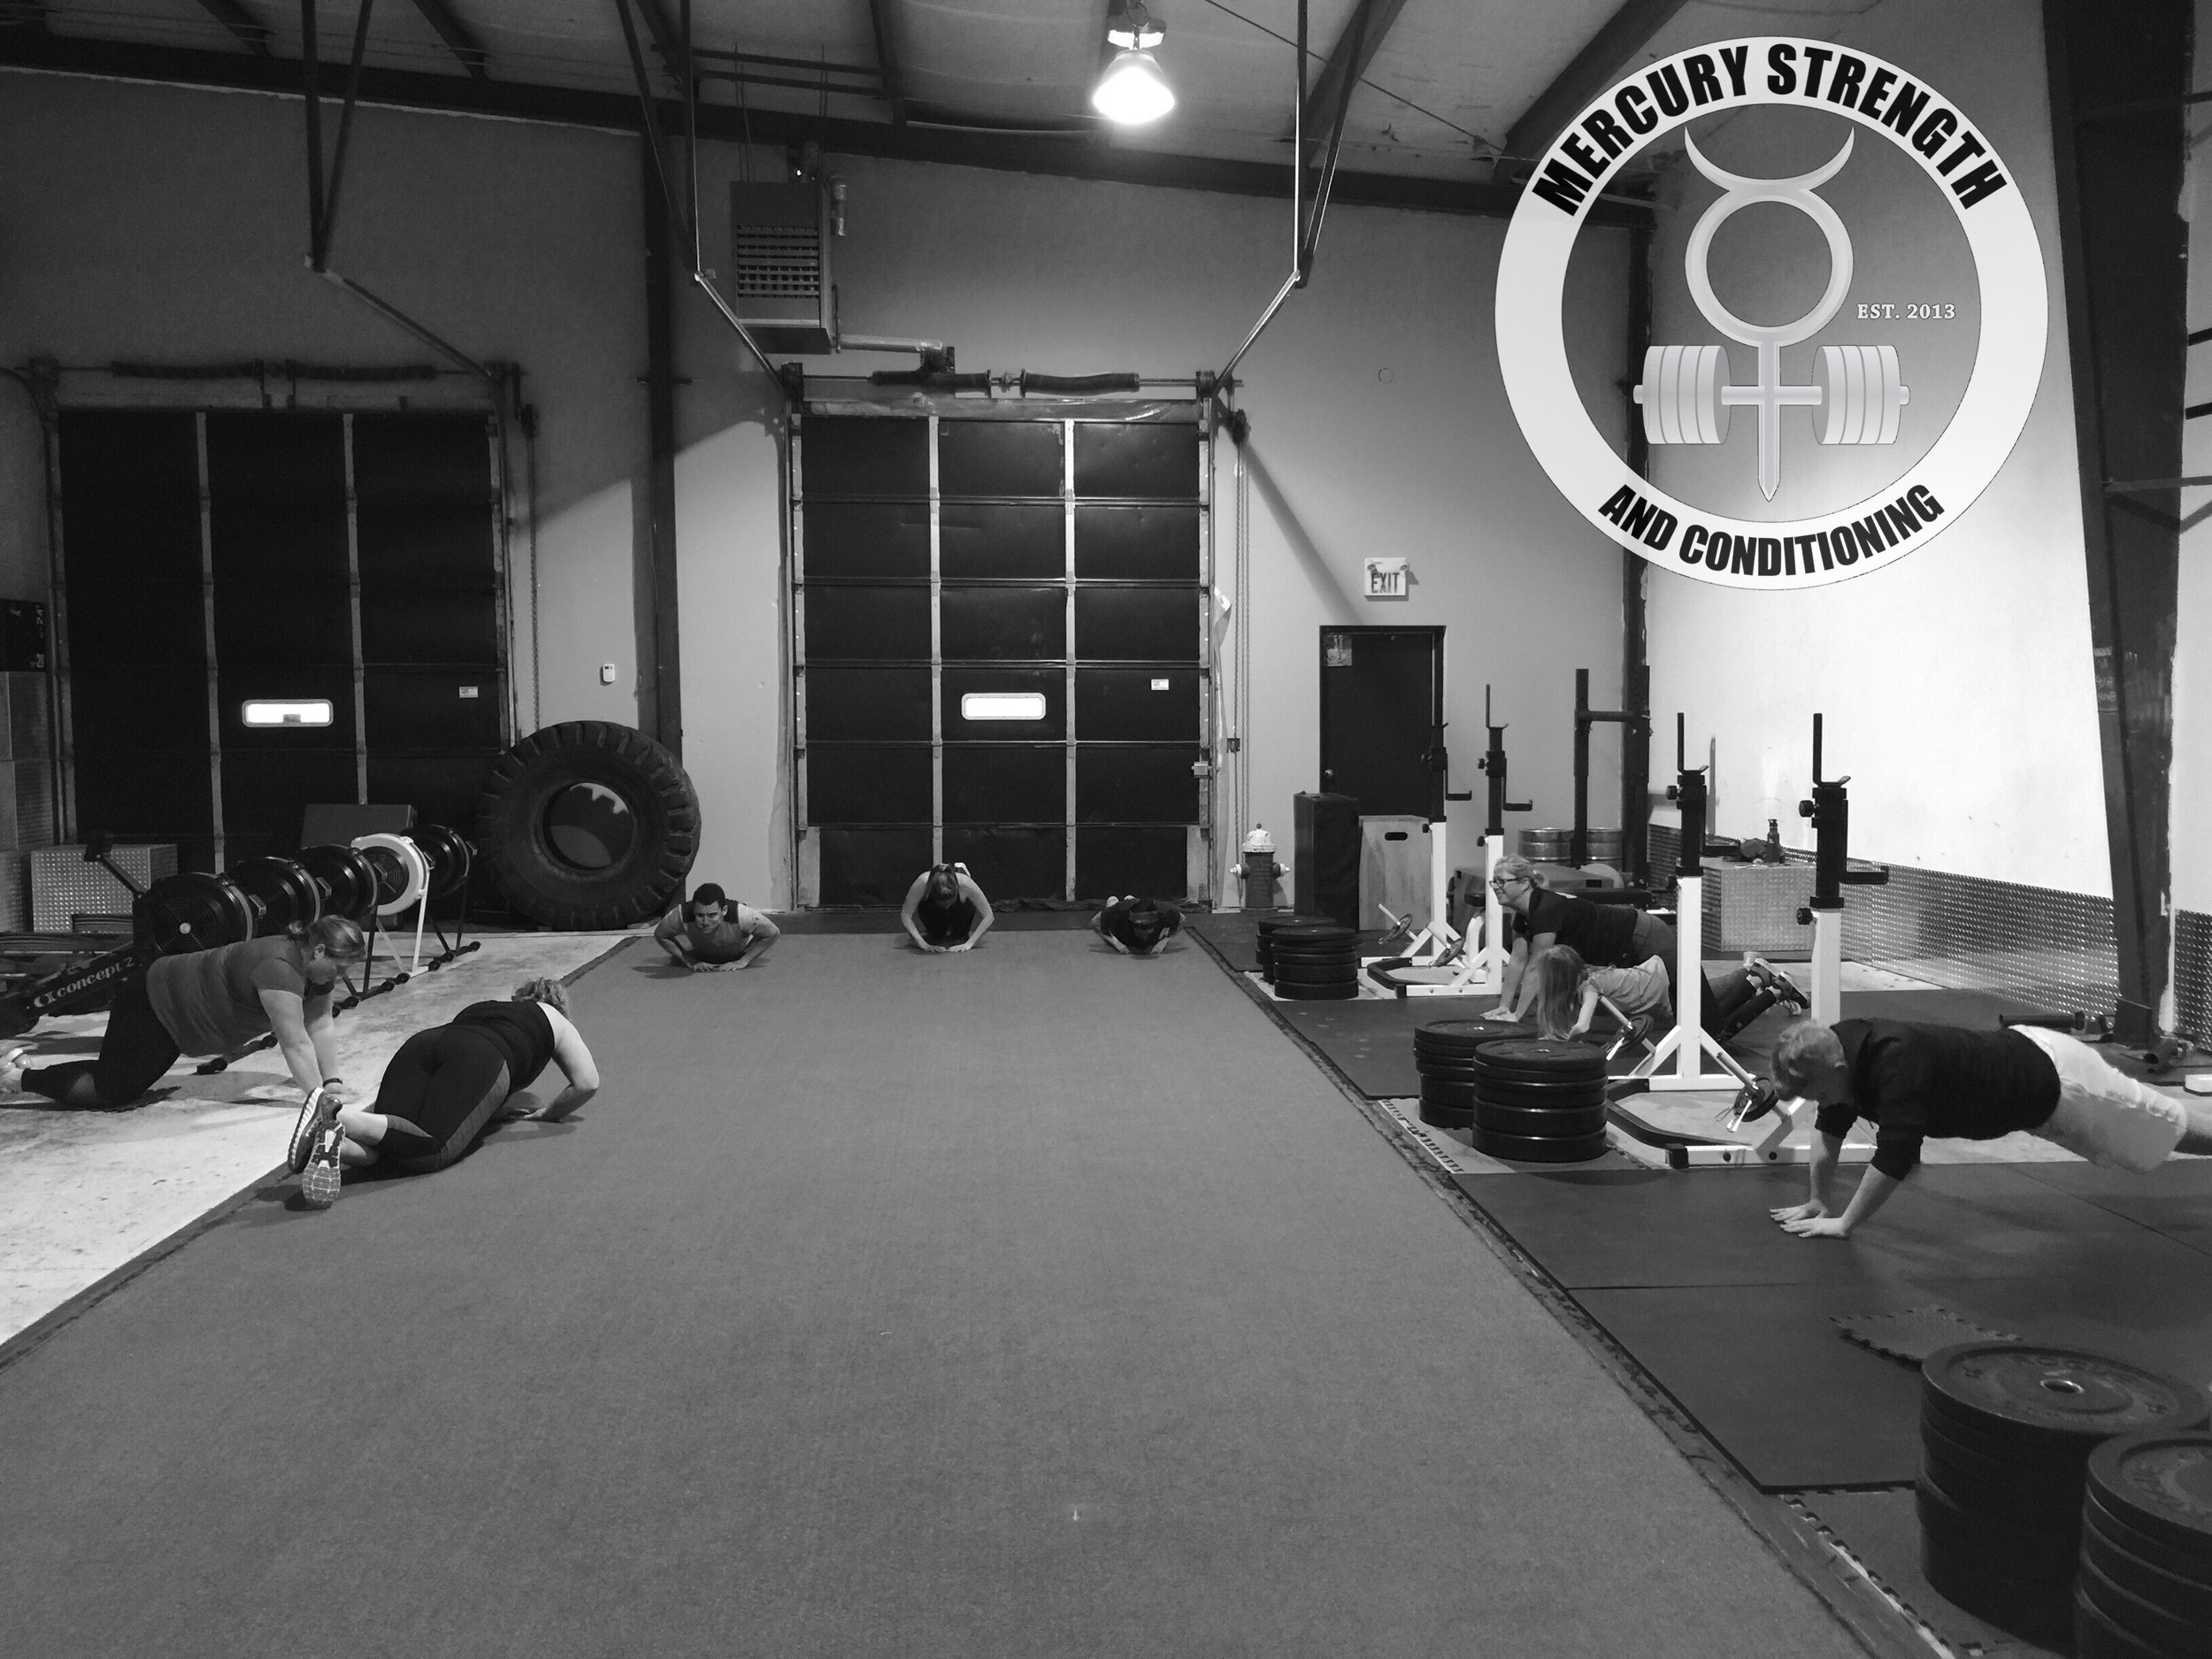 A bust 16:45 session starting the workout off with some diamond push-ups